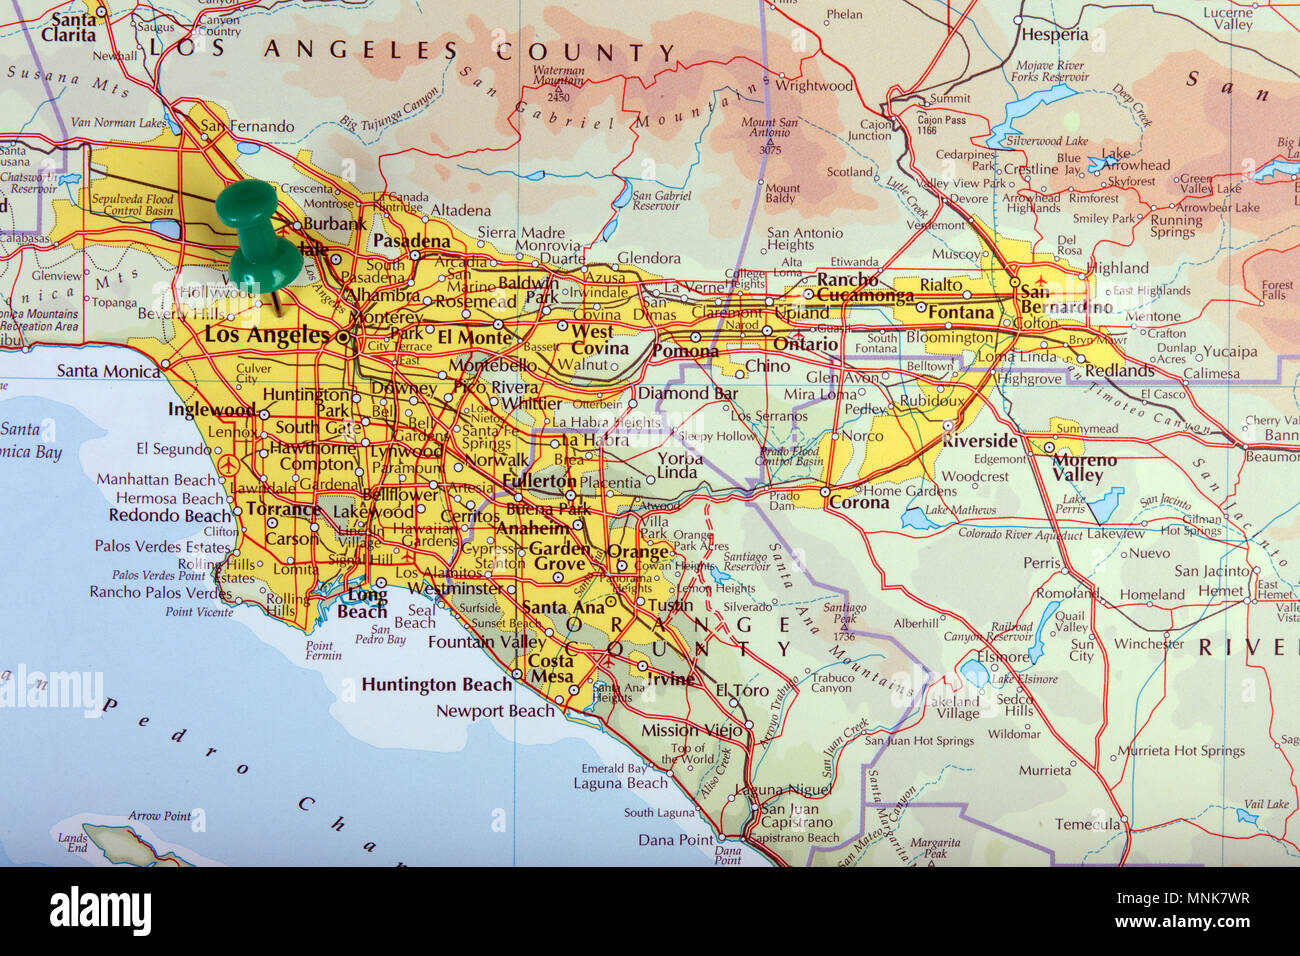 Map Of America Los Angeles.The Hague Netherlands April 9 2016 Map Of Los Angeles In The